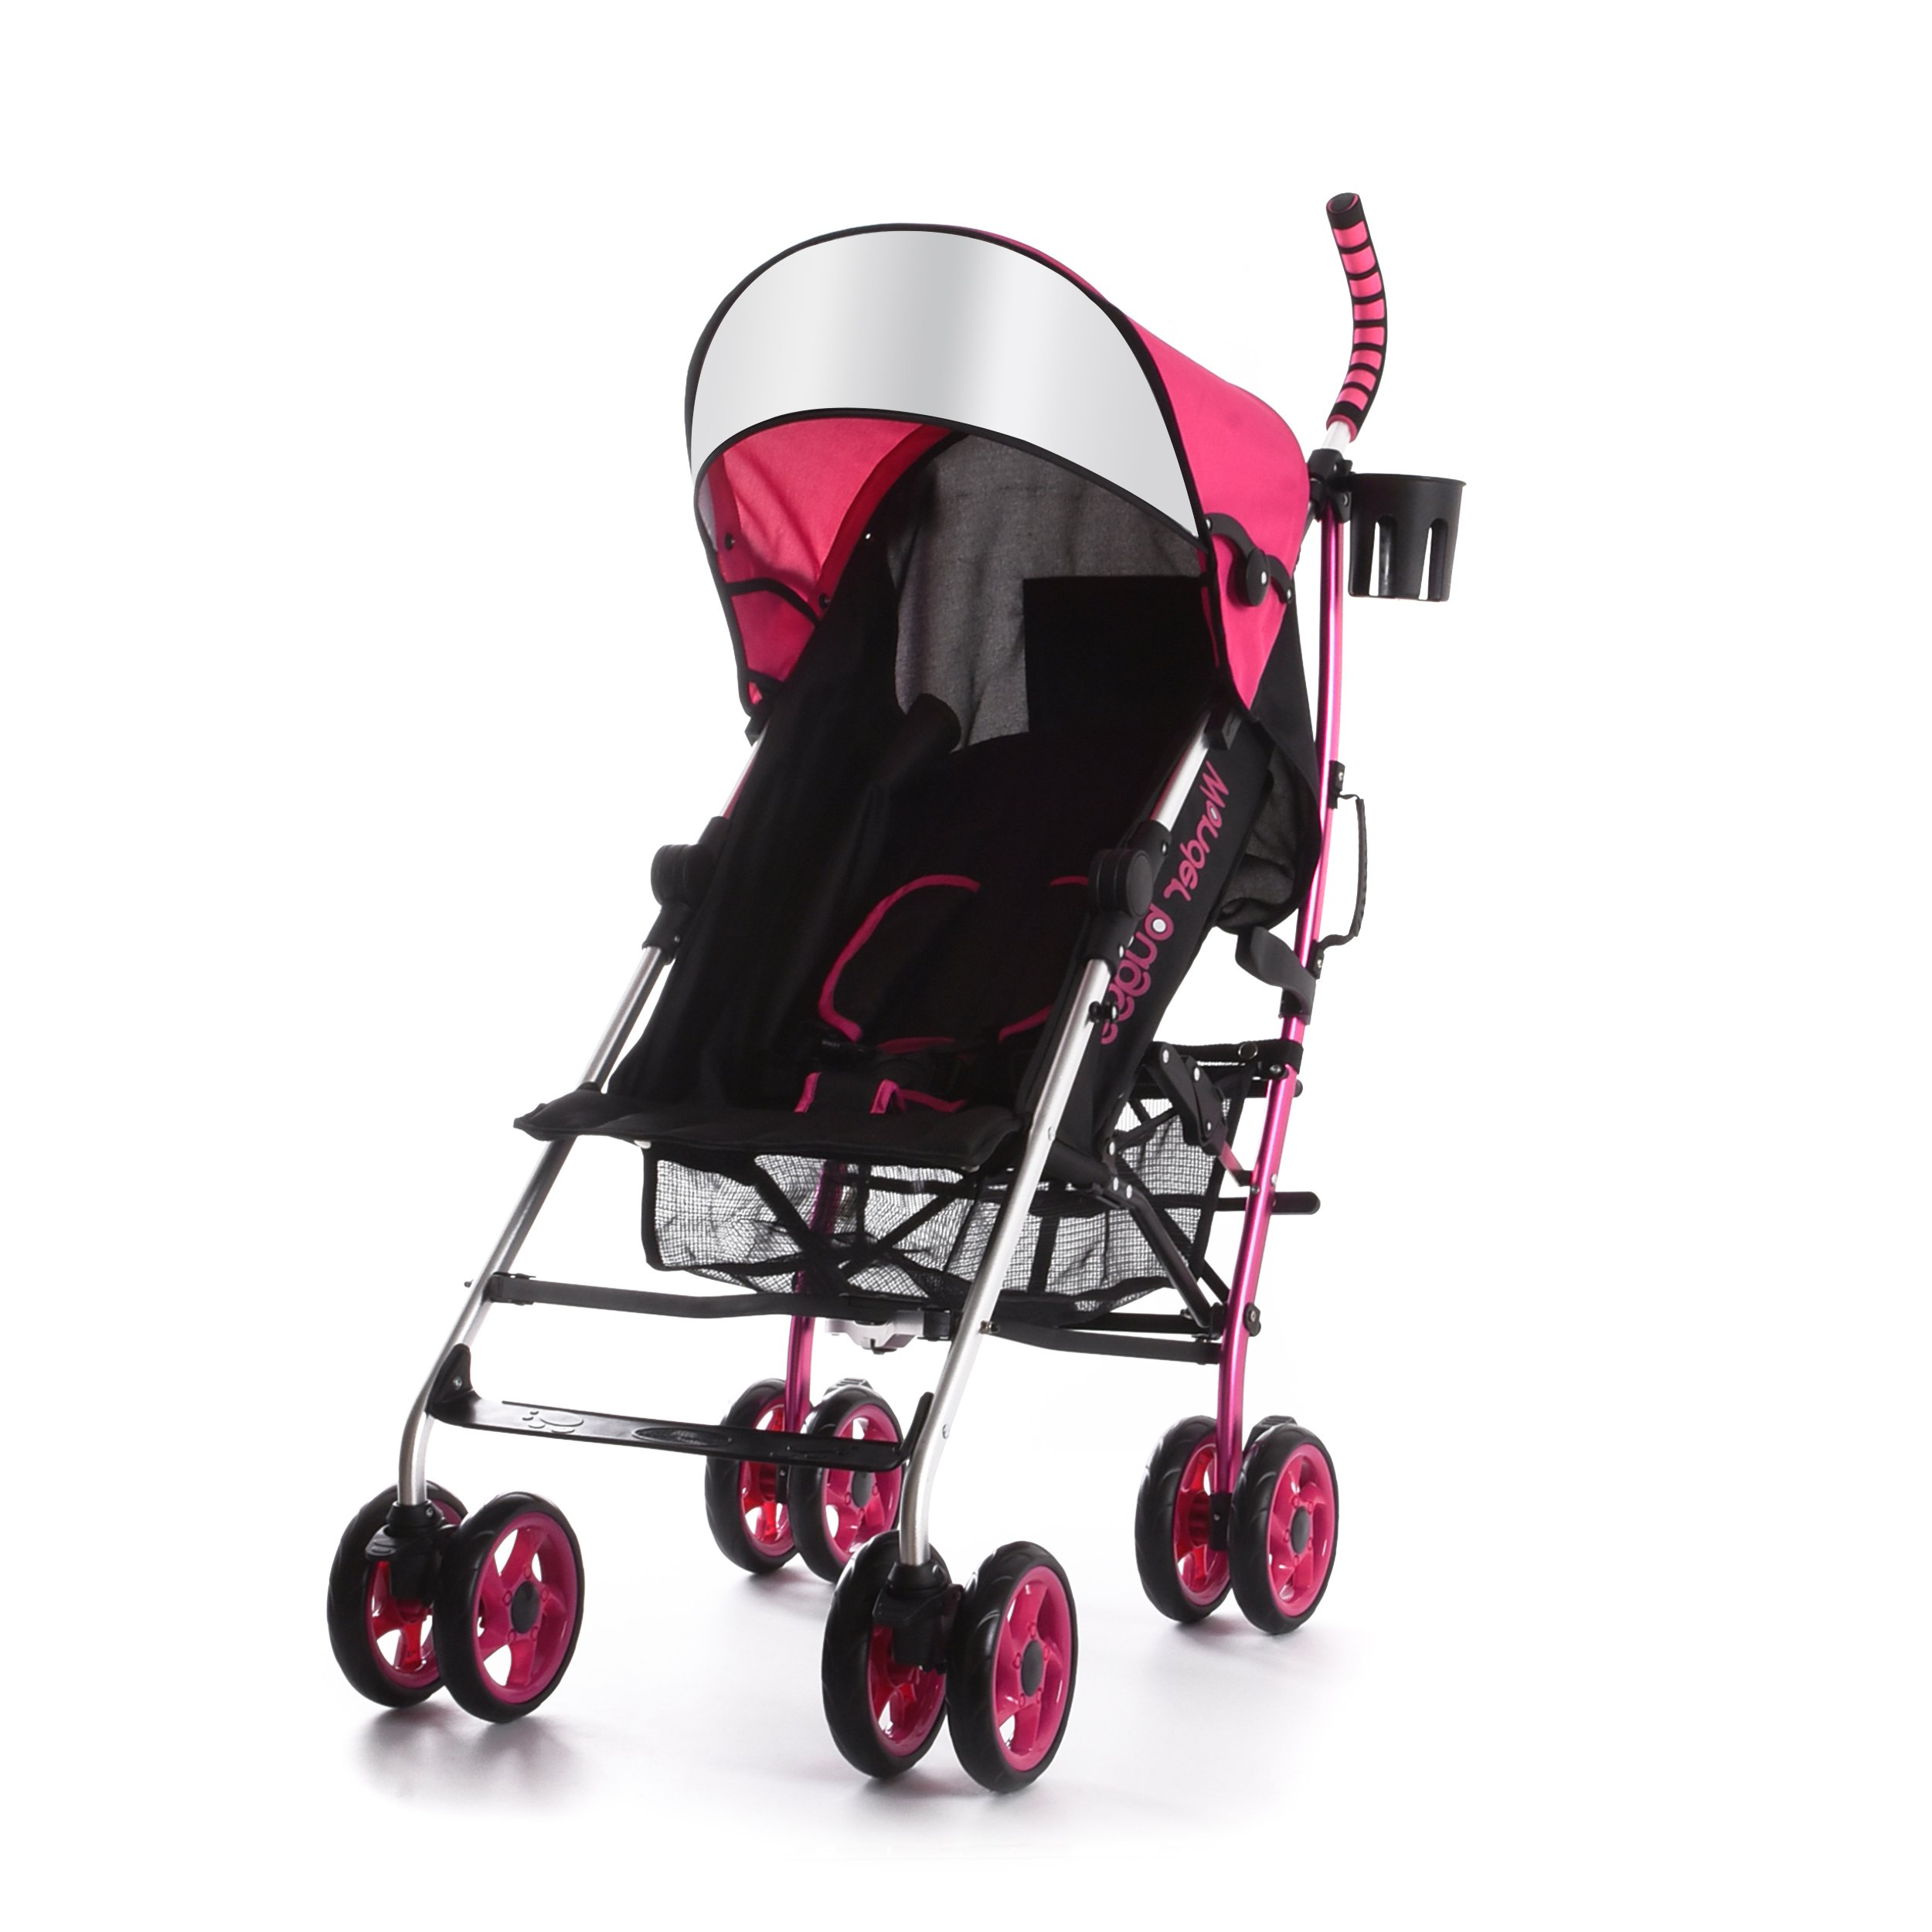 Wonder Buggy All Town Rider Light Weight Four Position Aluminum Stroller with Sun Visor, Pink, One Size